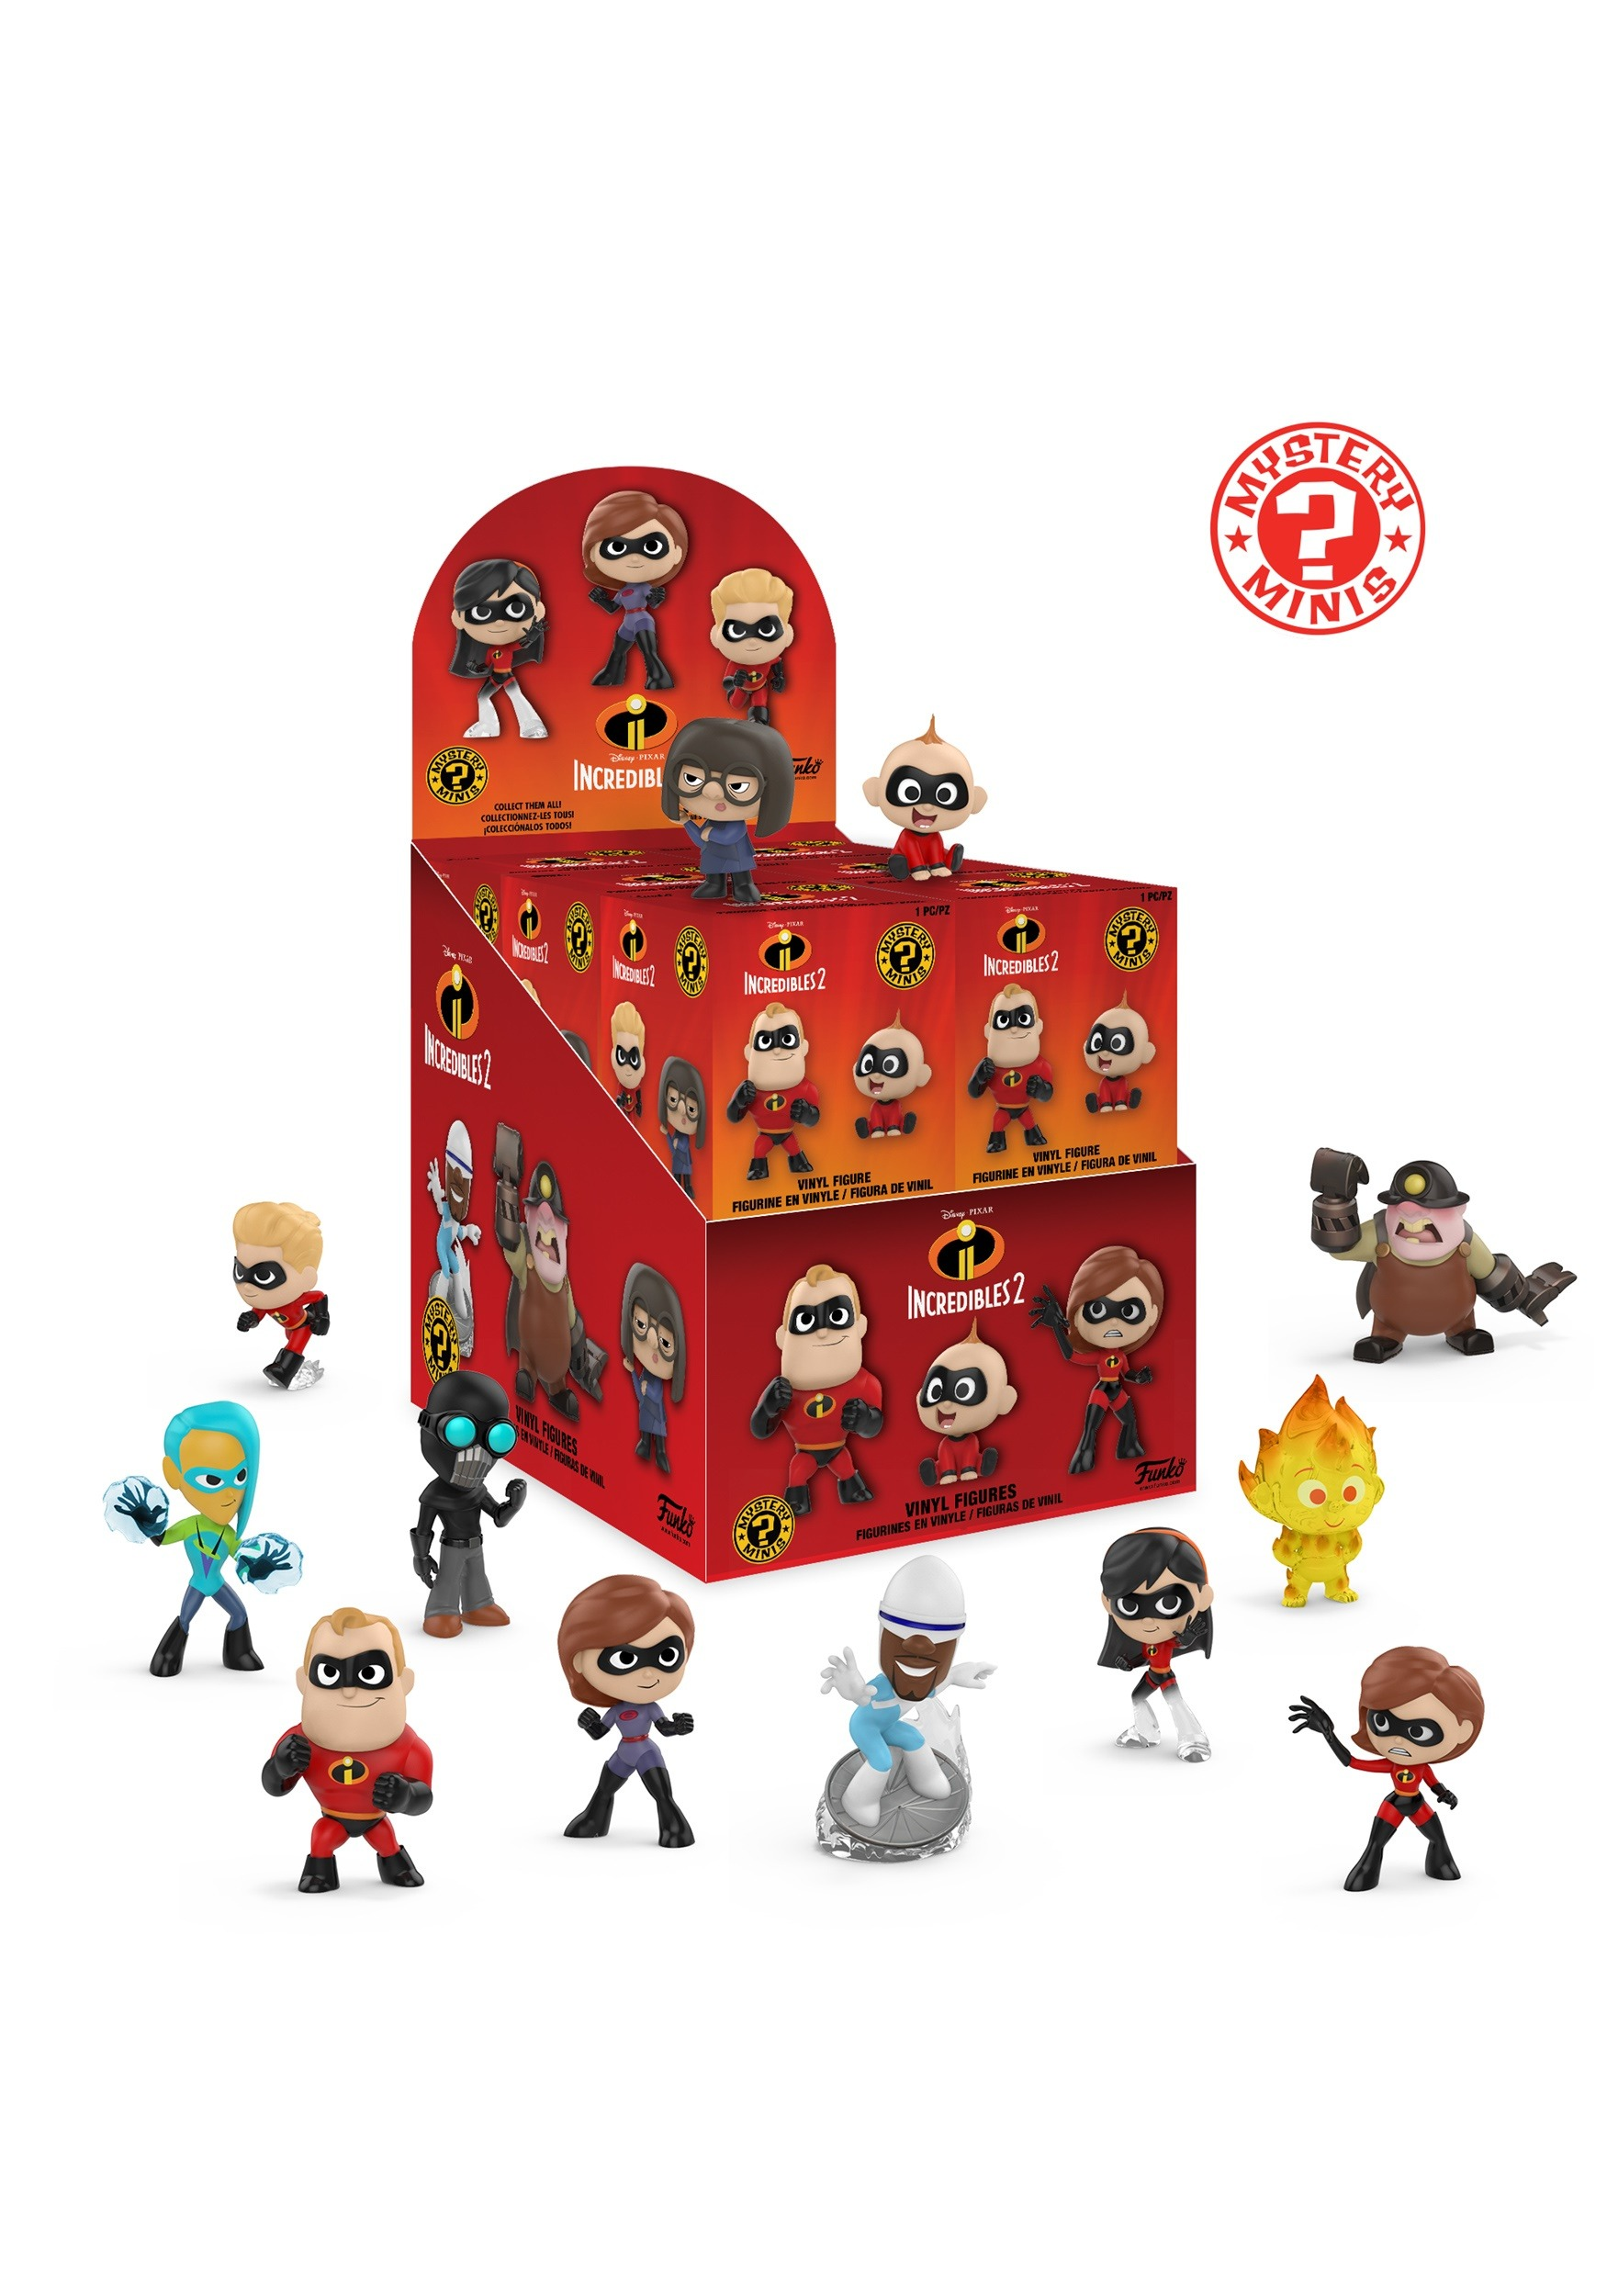 Mystery Minis Figures from Disney's Incredibles 2 Incredibles Costume